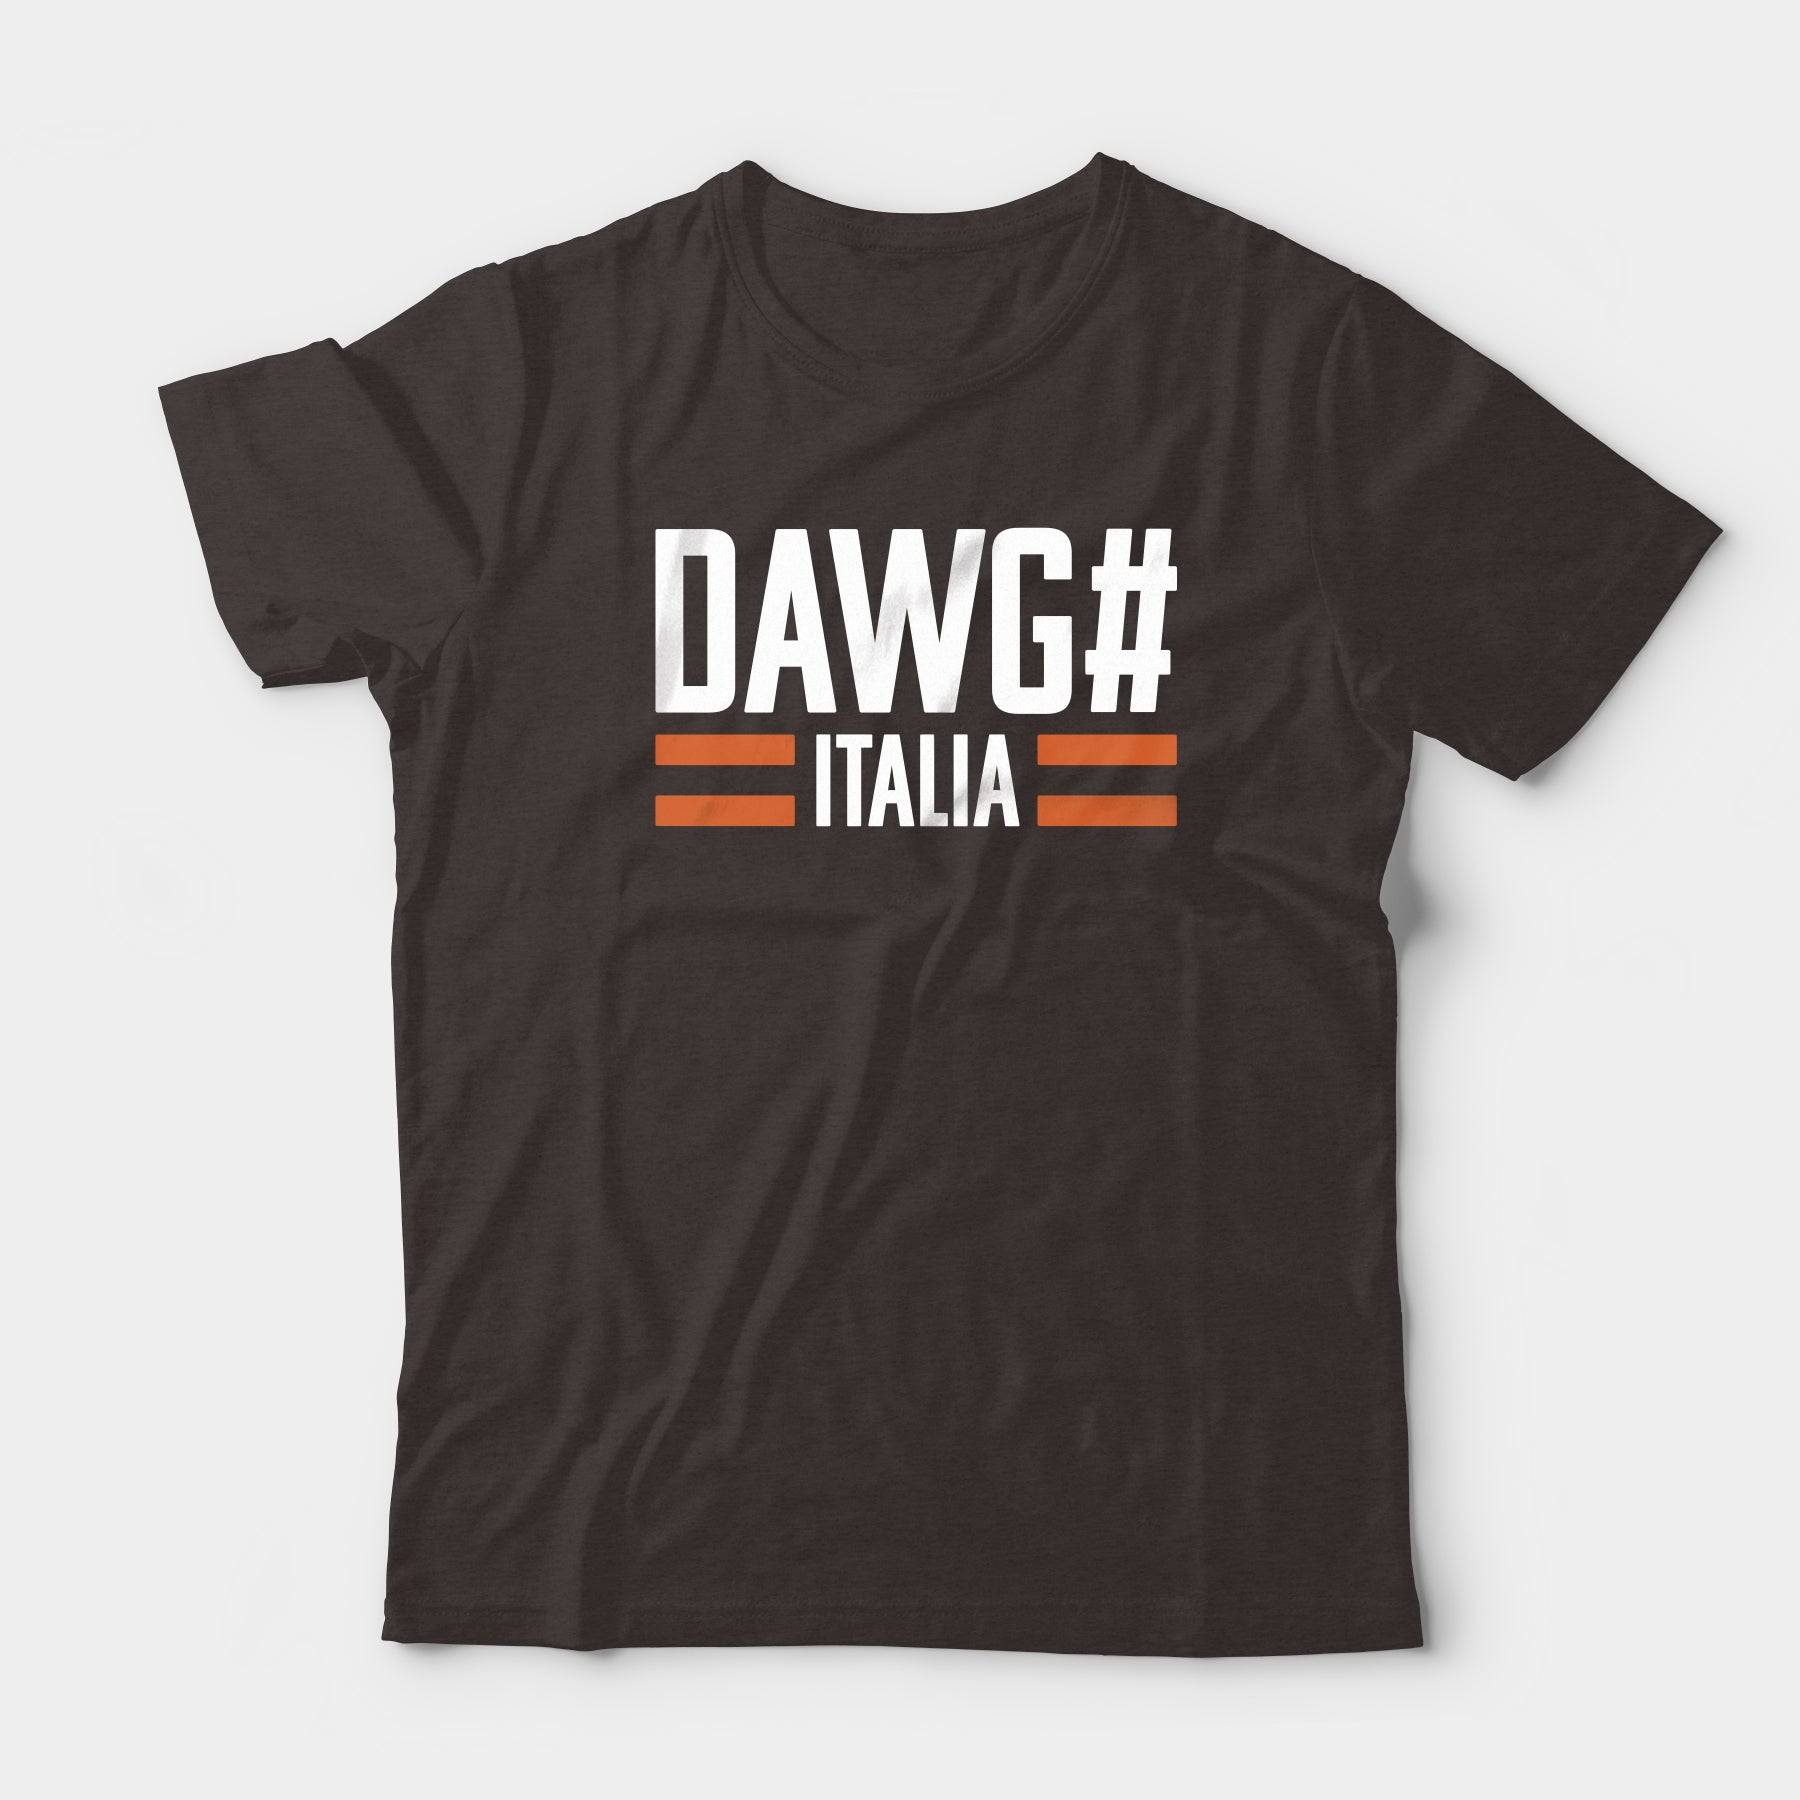 Dawg# Italia Tee, Brown